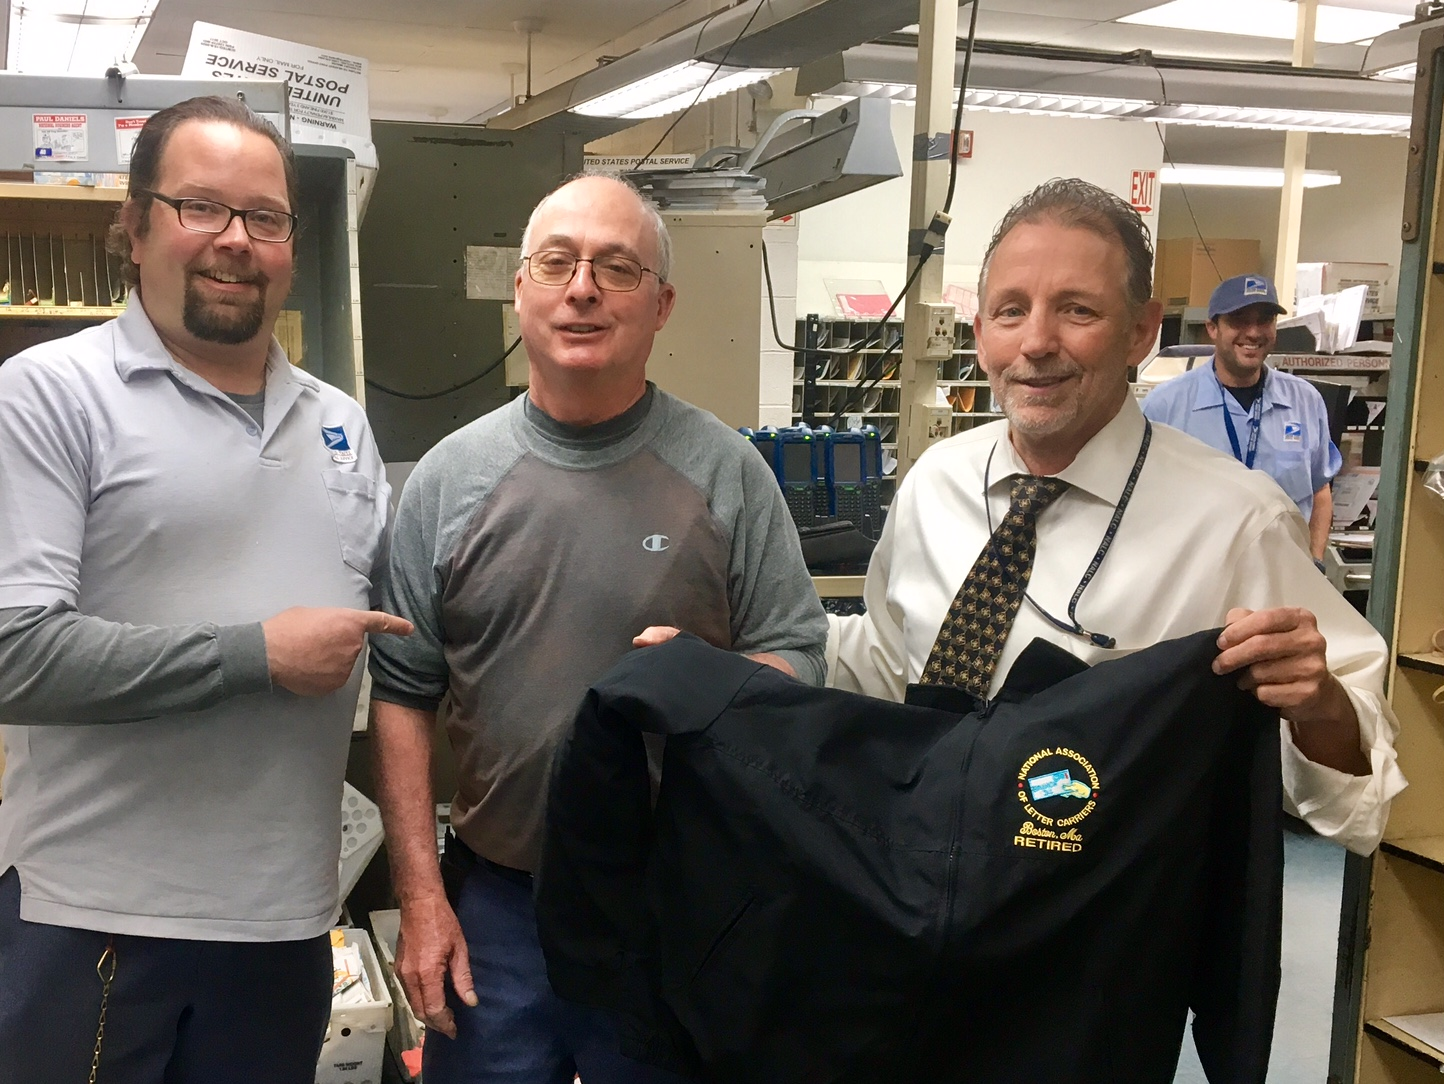 Auburndale Steward Tom Kierstead and President Michael Yerkes congratulate Bob Fadden on his last day following more than 30 years of service